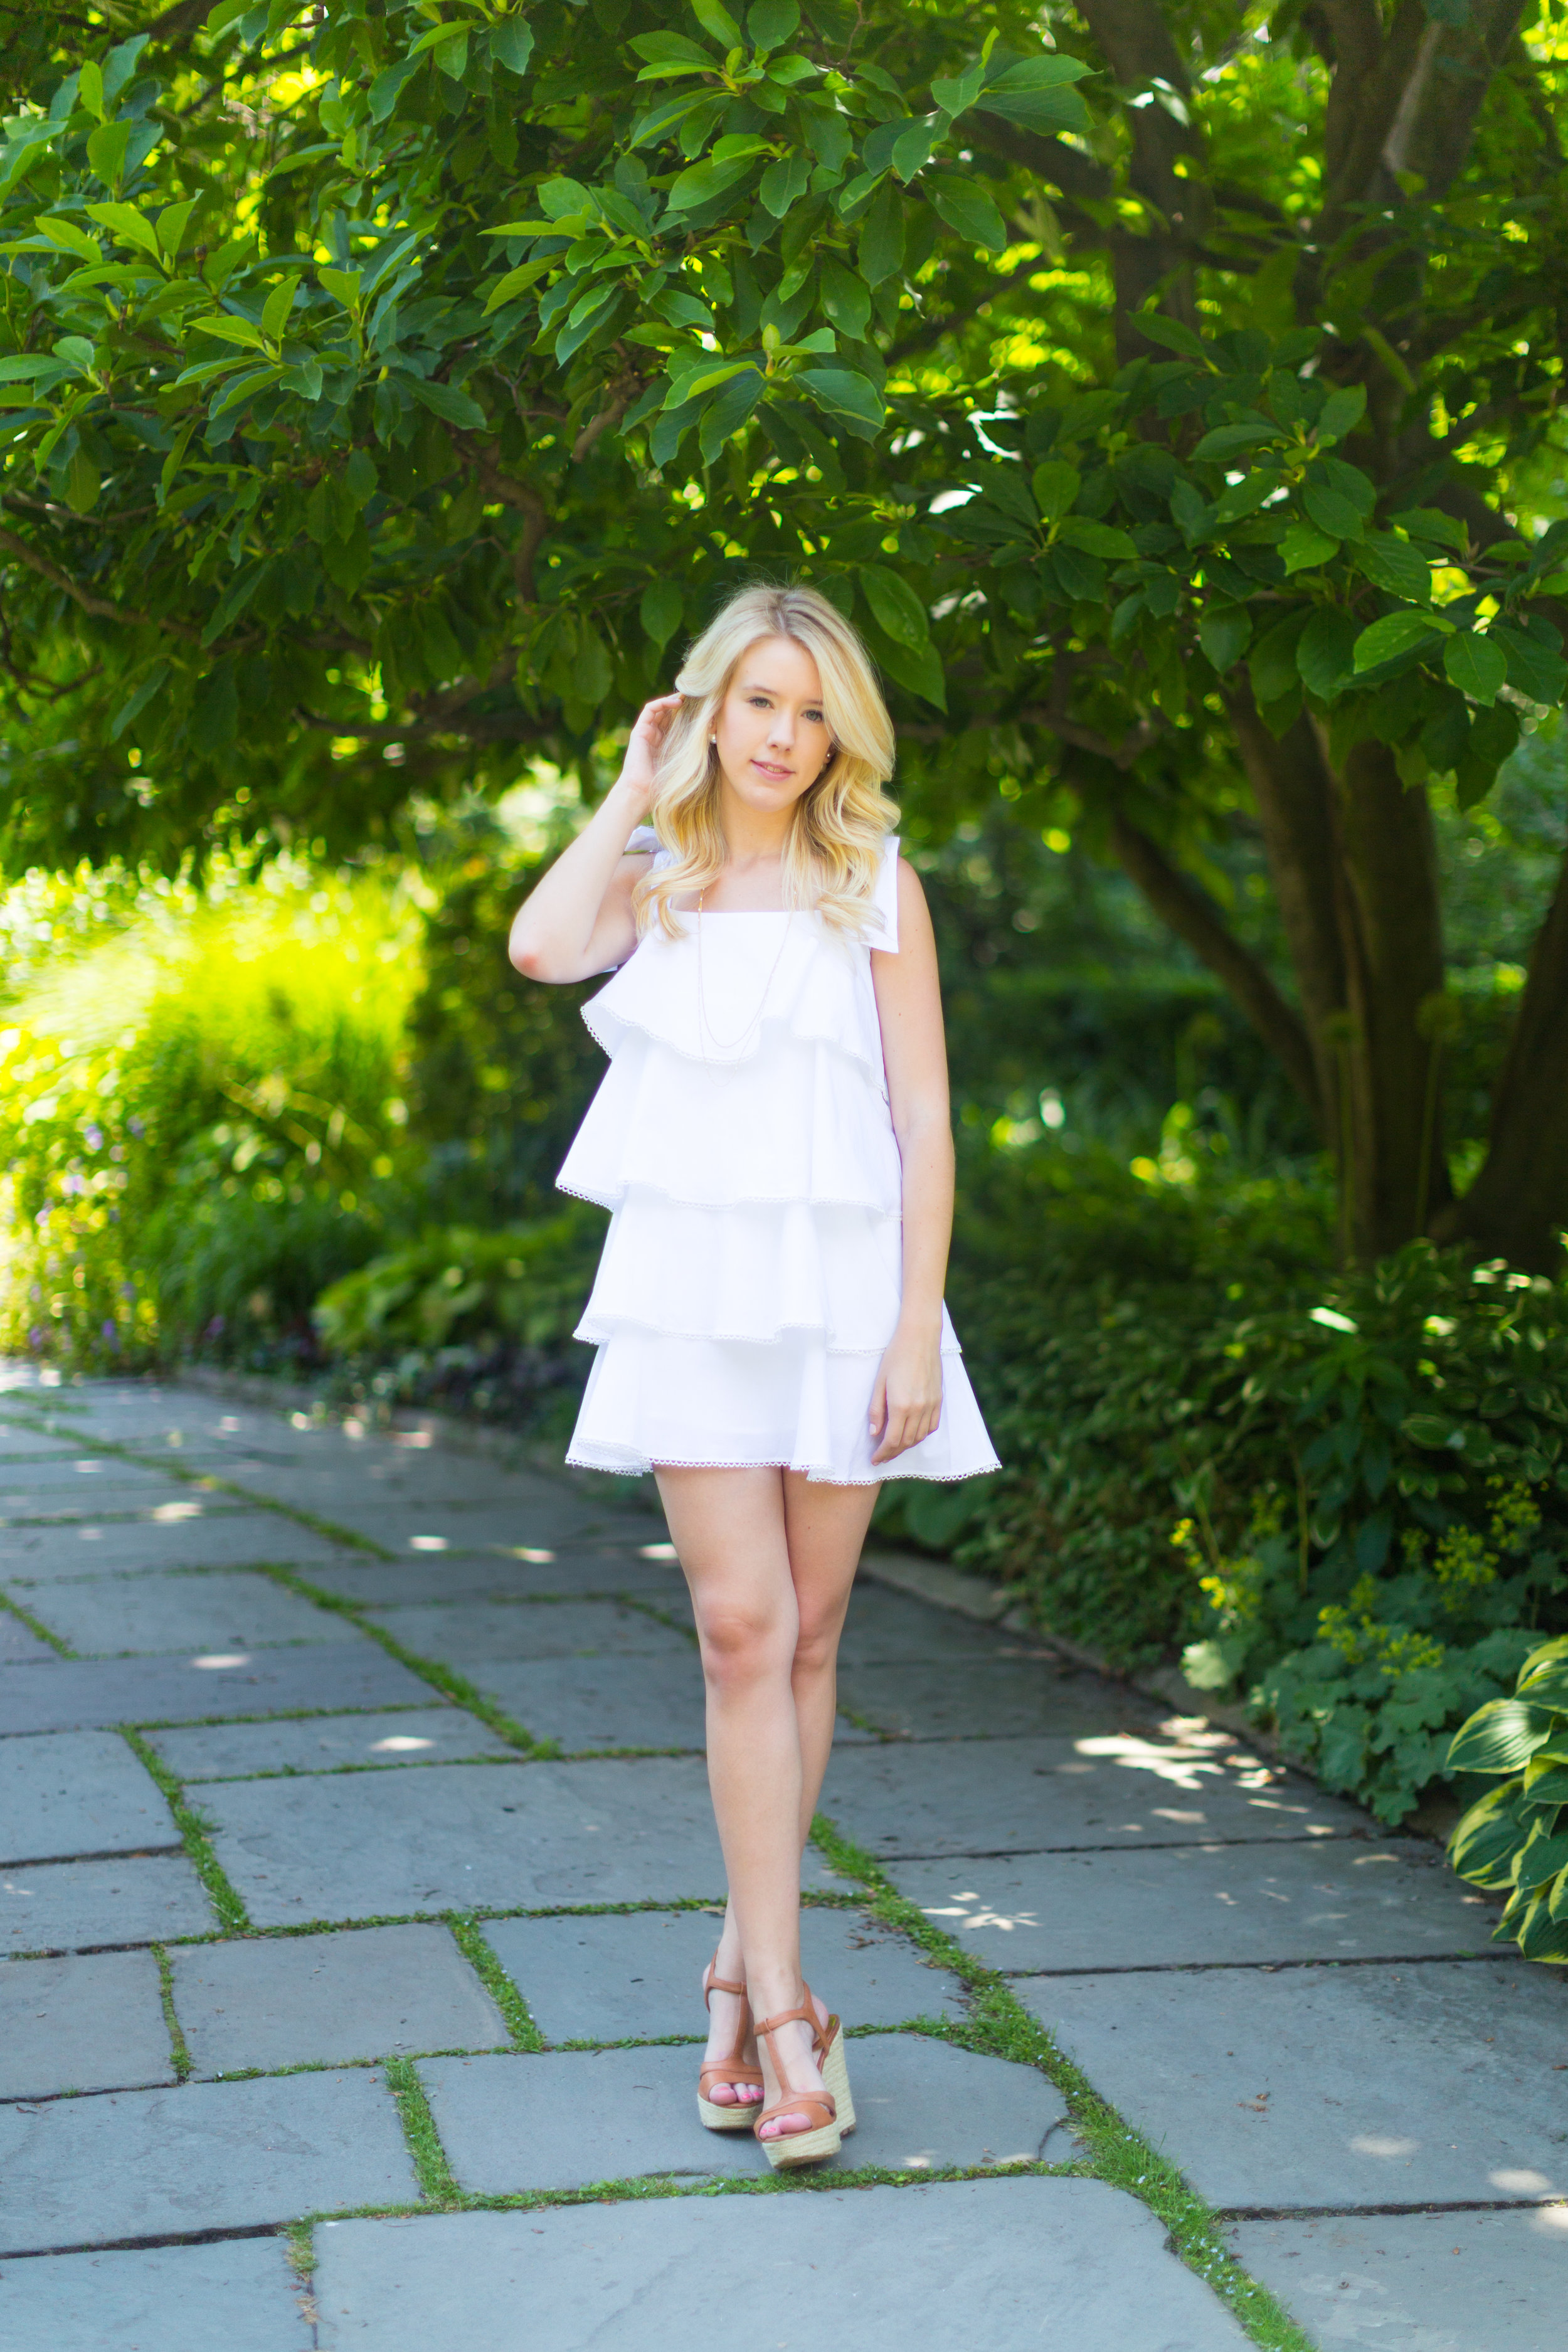 NYC Central Park Summer Fashion White Ruffled Dress.jpg